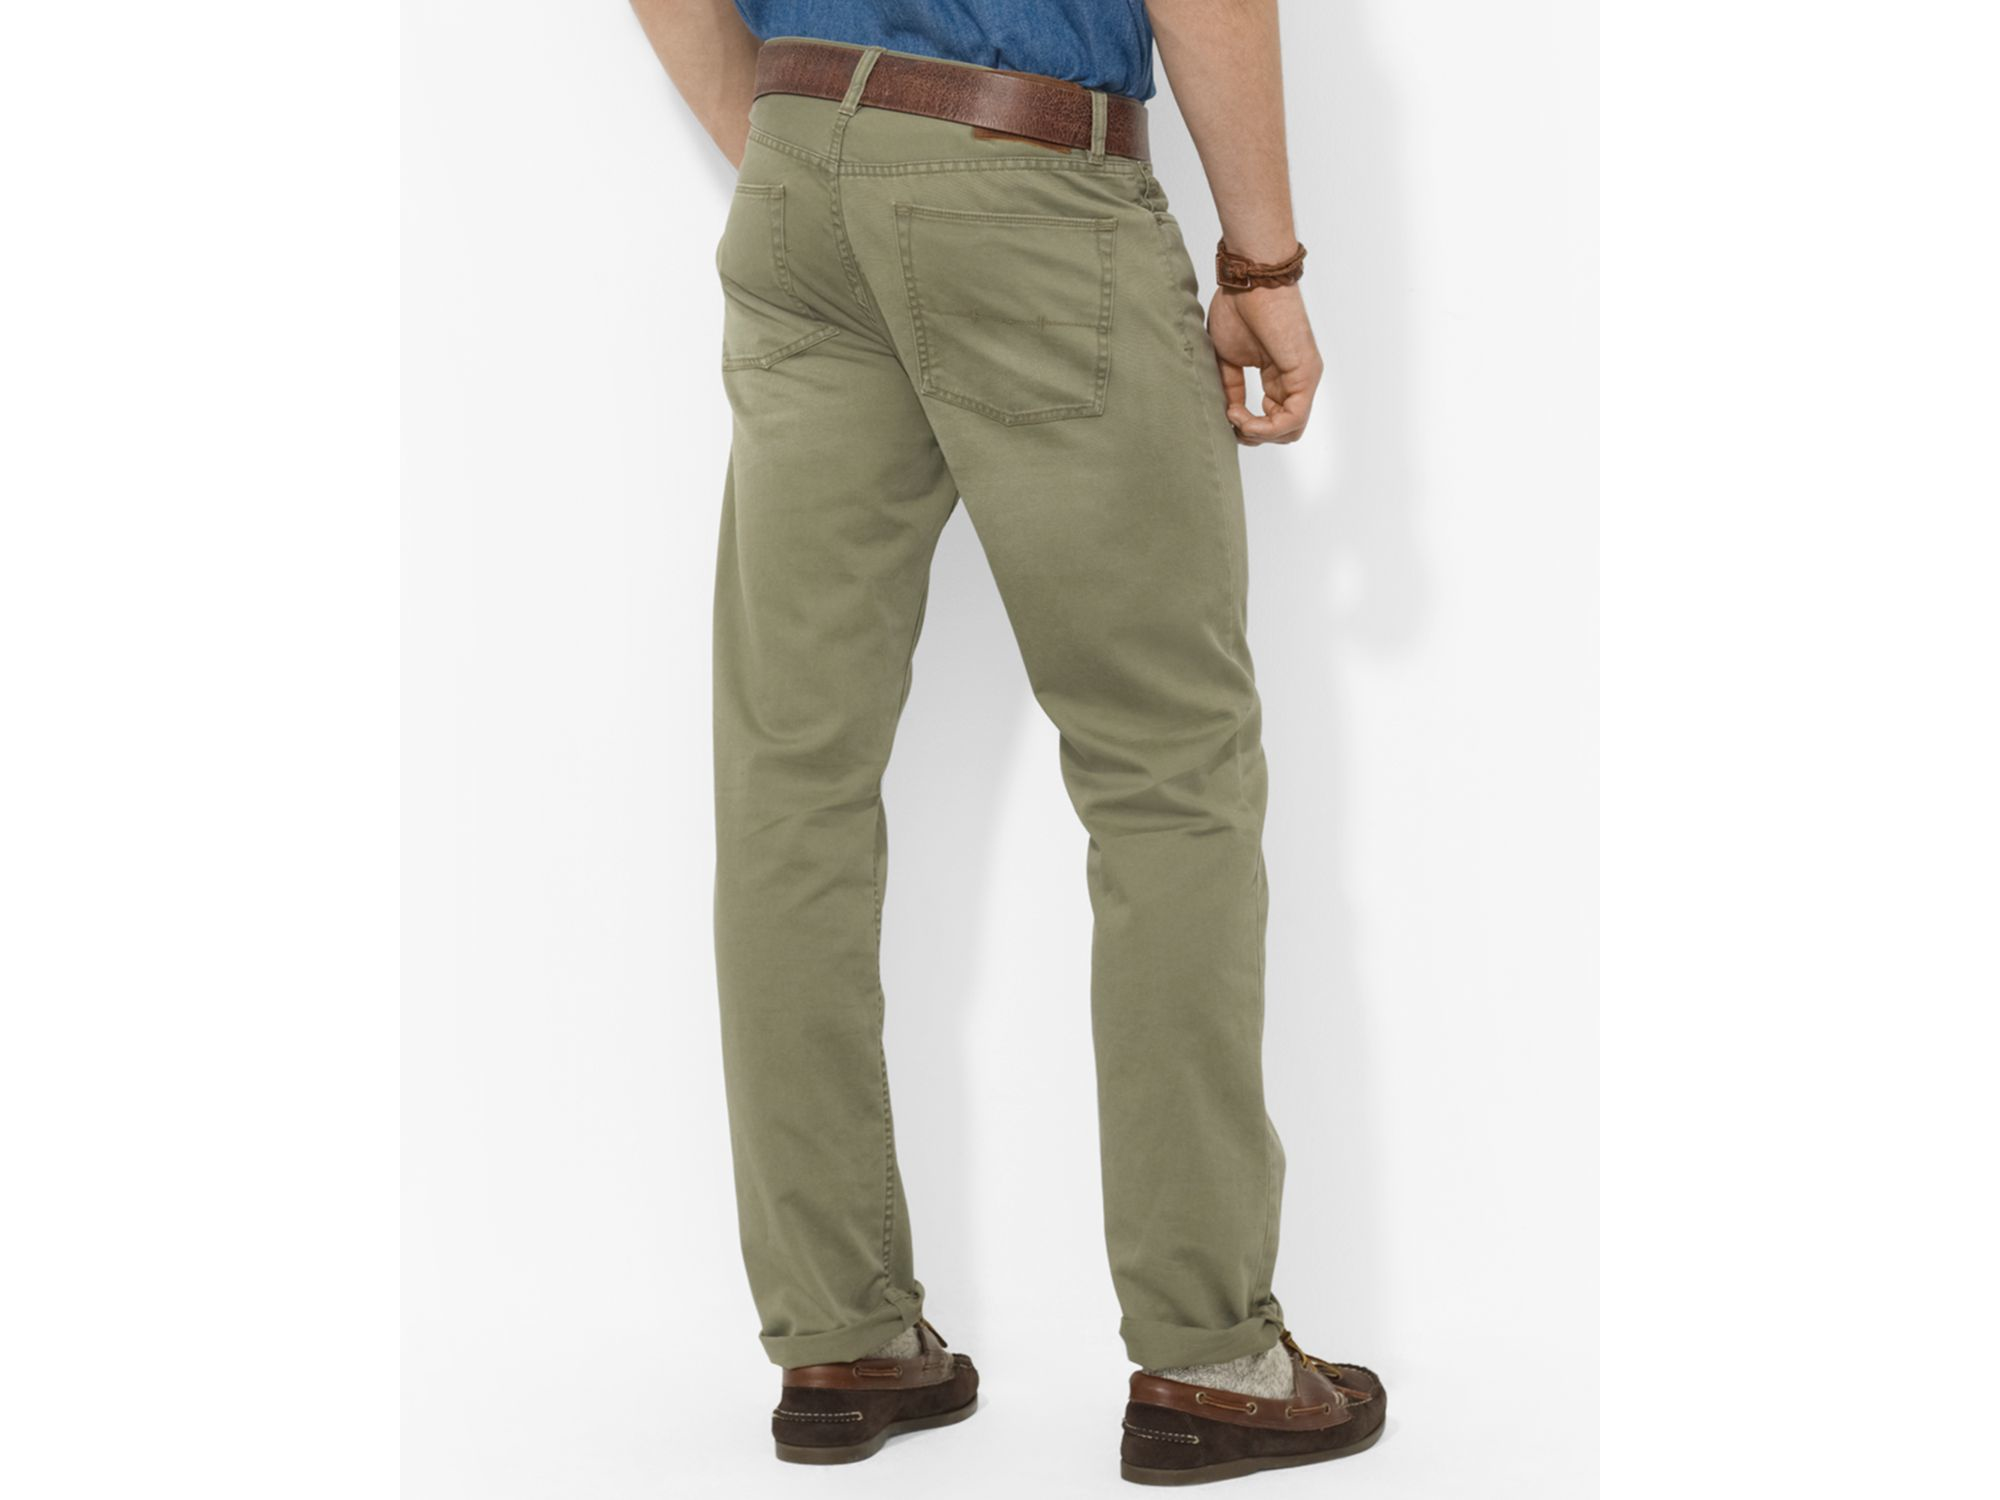 412c360a5812 Lyst - Polo Ralph Lauren Straight-fit Five-pocket Chino Pant in ...